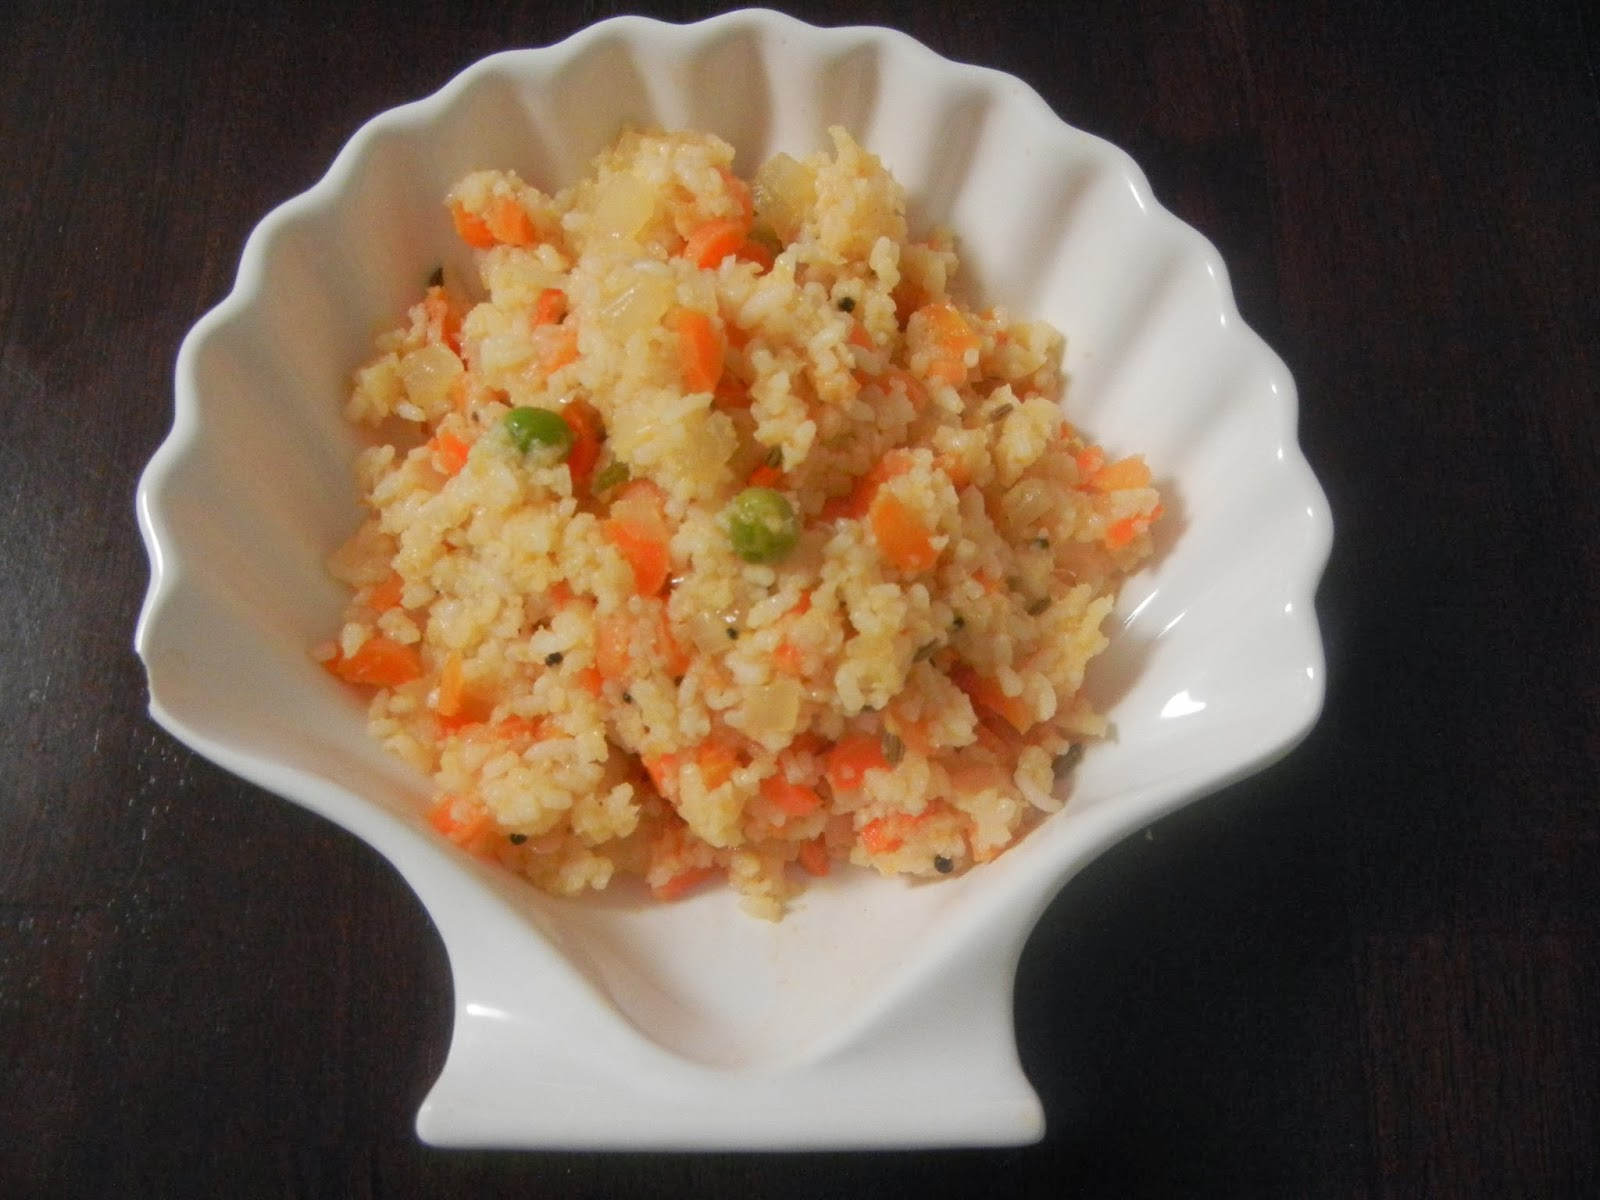 Gitas kitchen a blog for indian diabetic recipes and healthy kids and toddler recipes carrot and peas rice forumfinder Choice Image